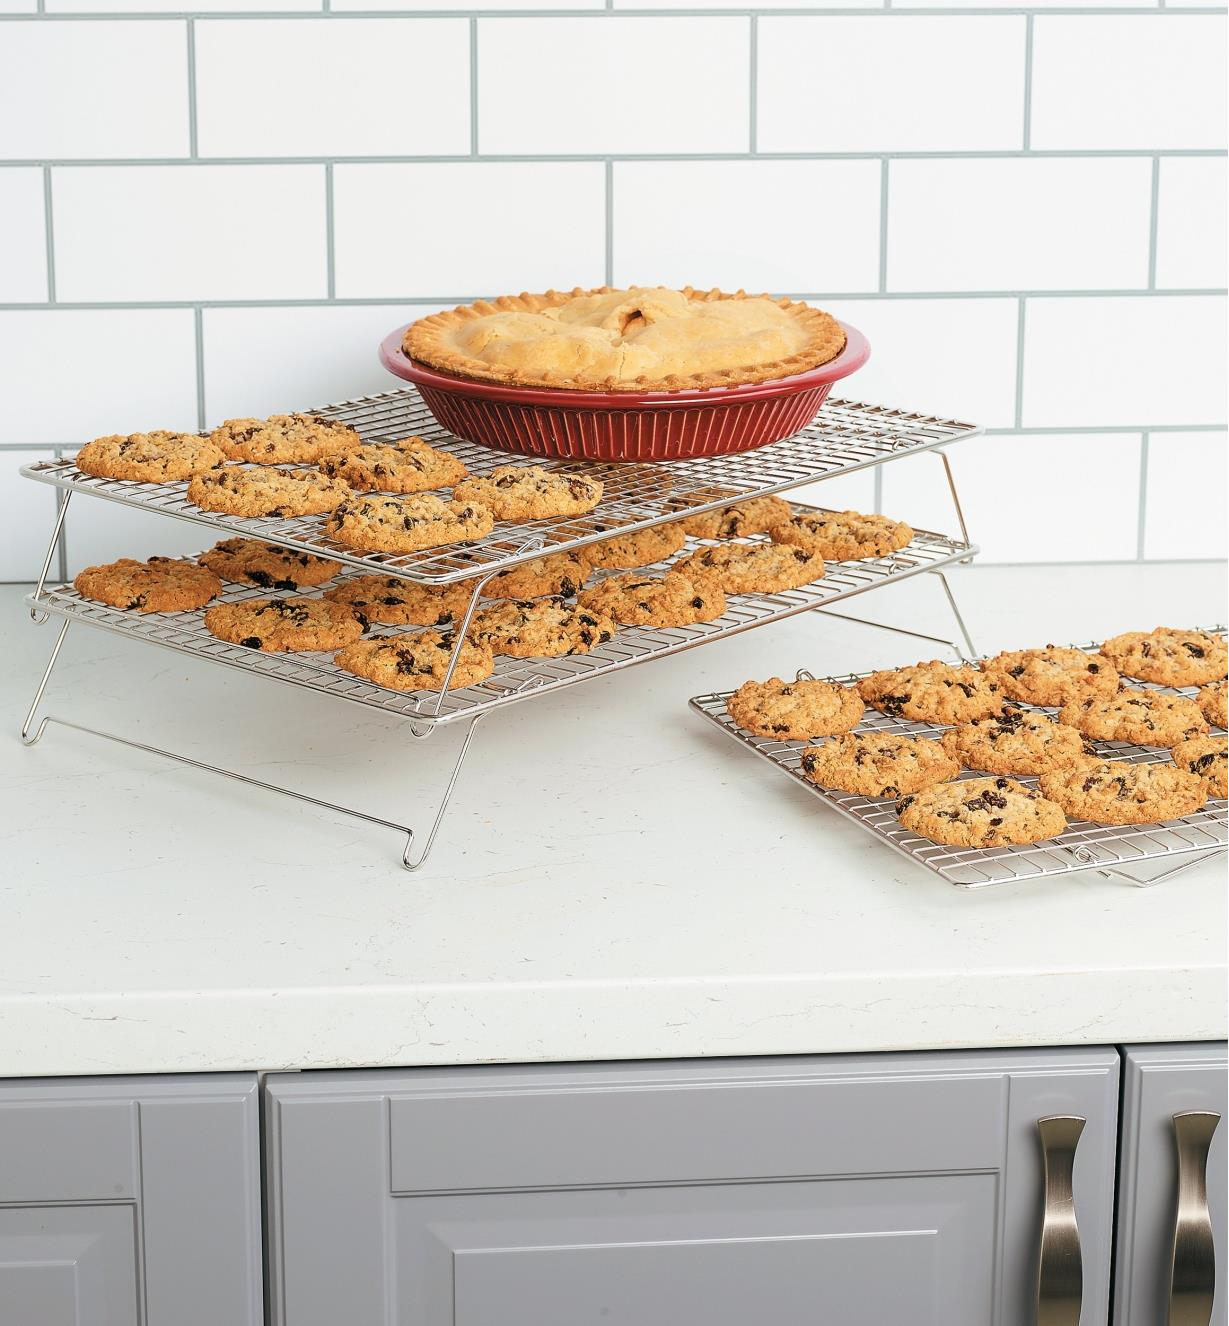 Two stacked racks holding cookies and a pie next to a third rack sitting on the counter, holding cookies